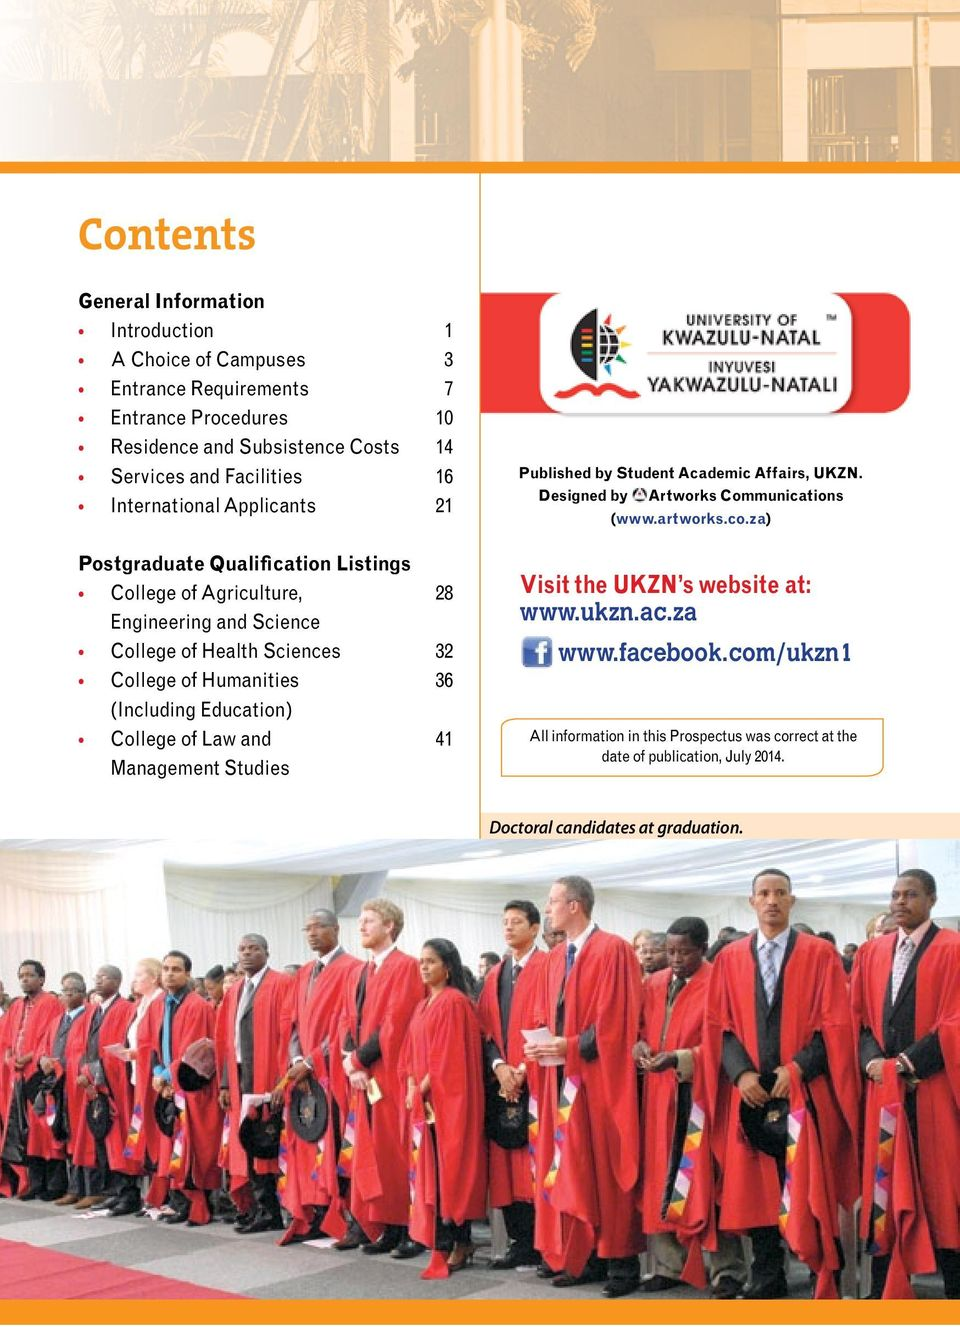 (Including Education) College of Law and 41 Management Studies Published by Student Academic Affairs, UKZN. Designed by Artworks Communications (www.artworks.co.